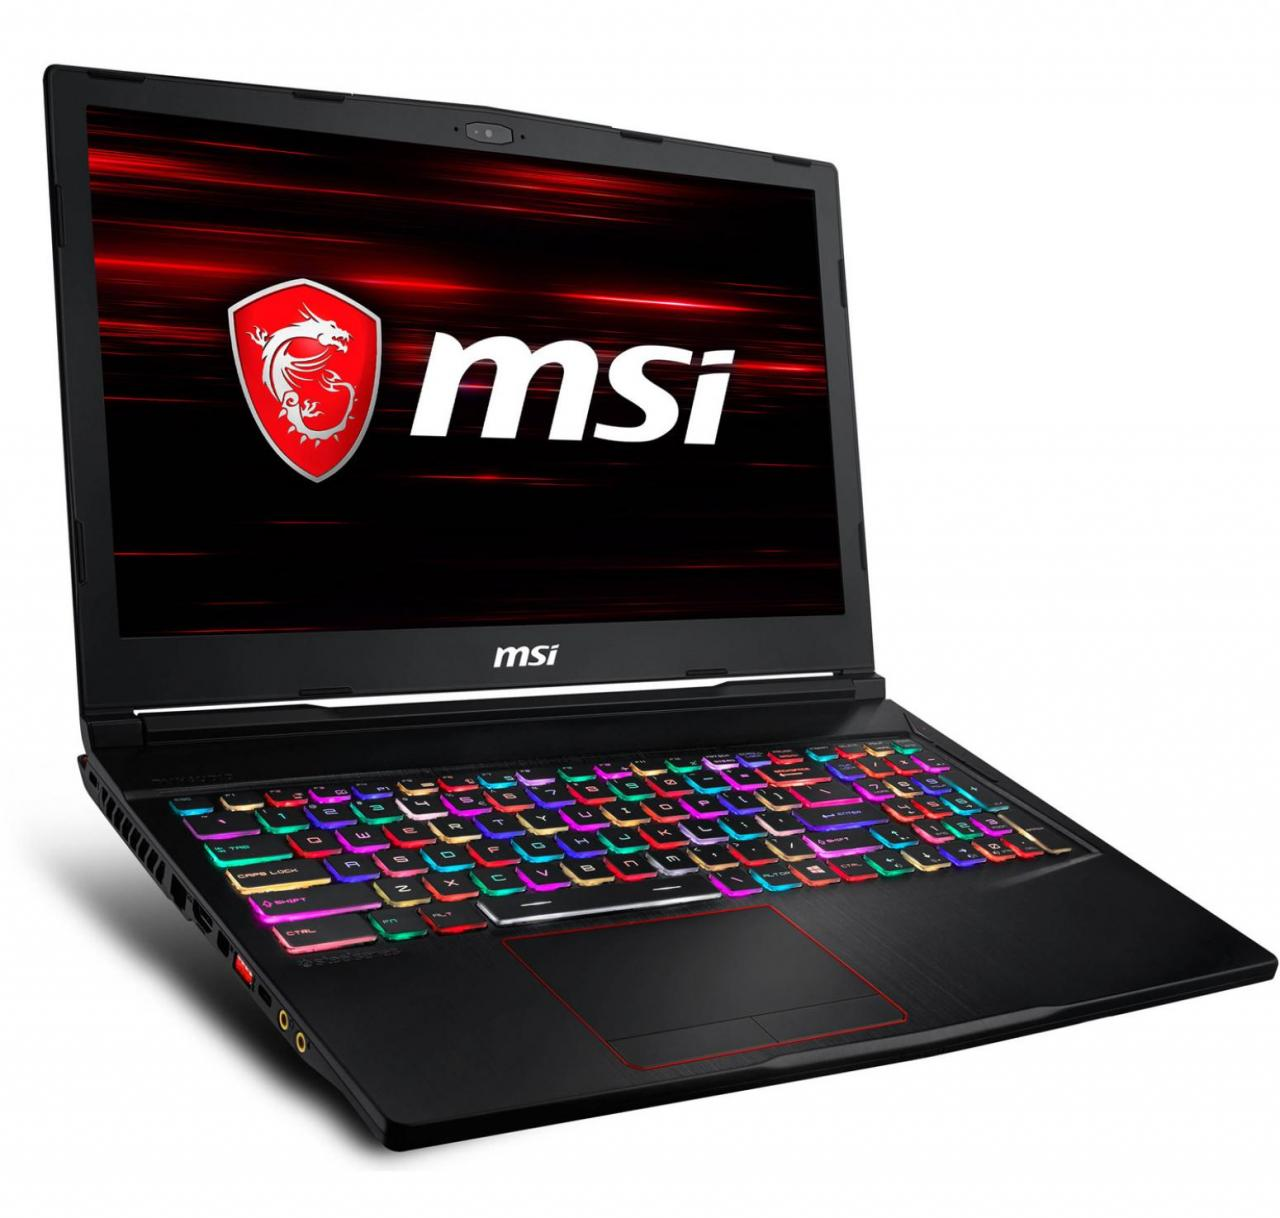 MSI GE63 8RE-029X Specs and Details